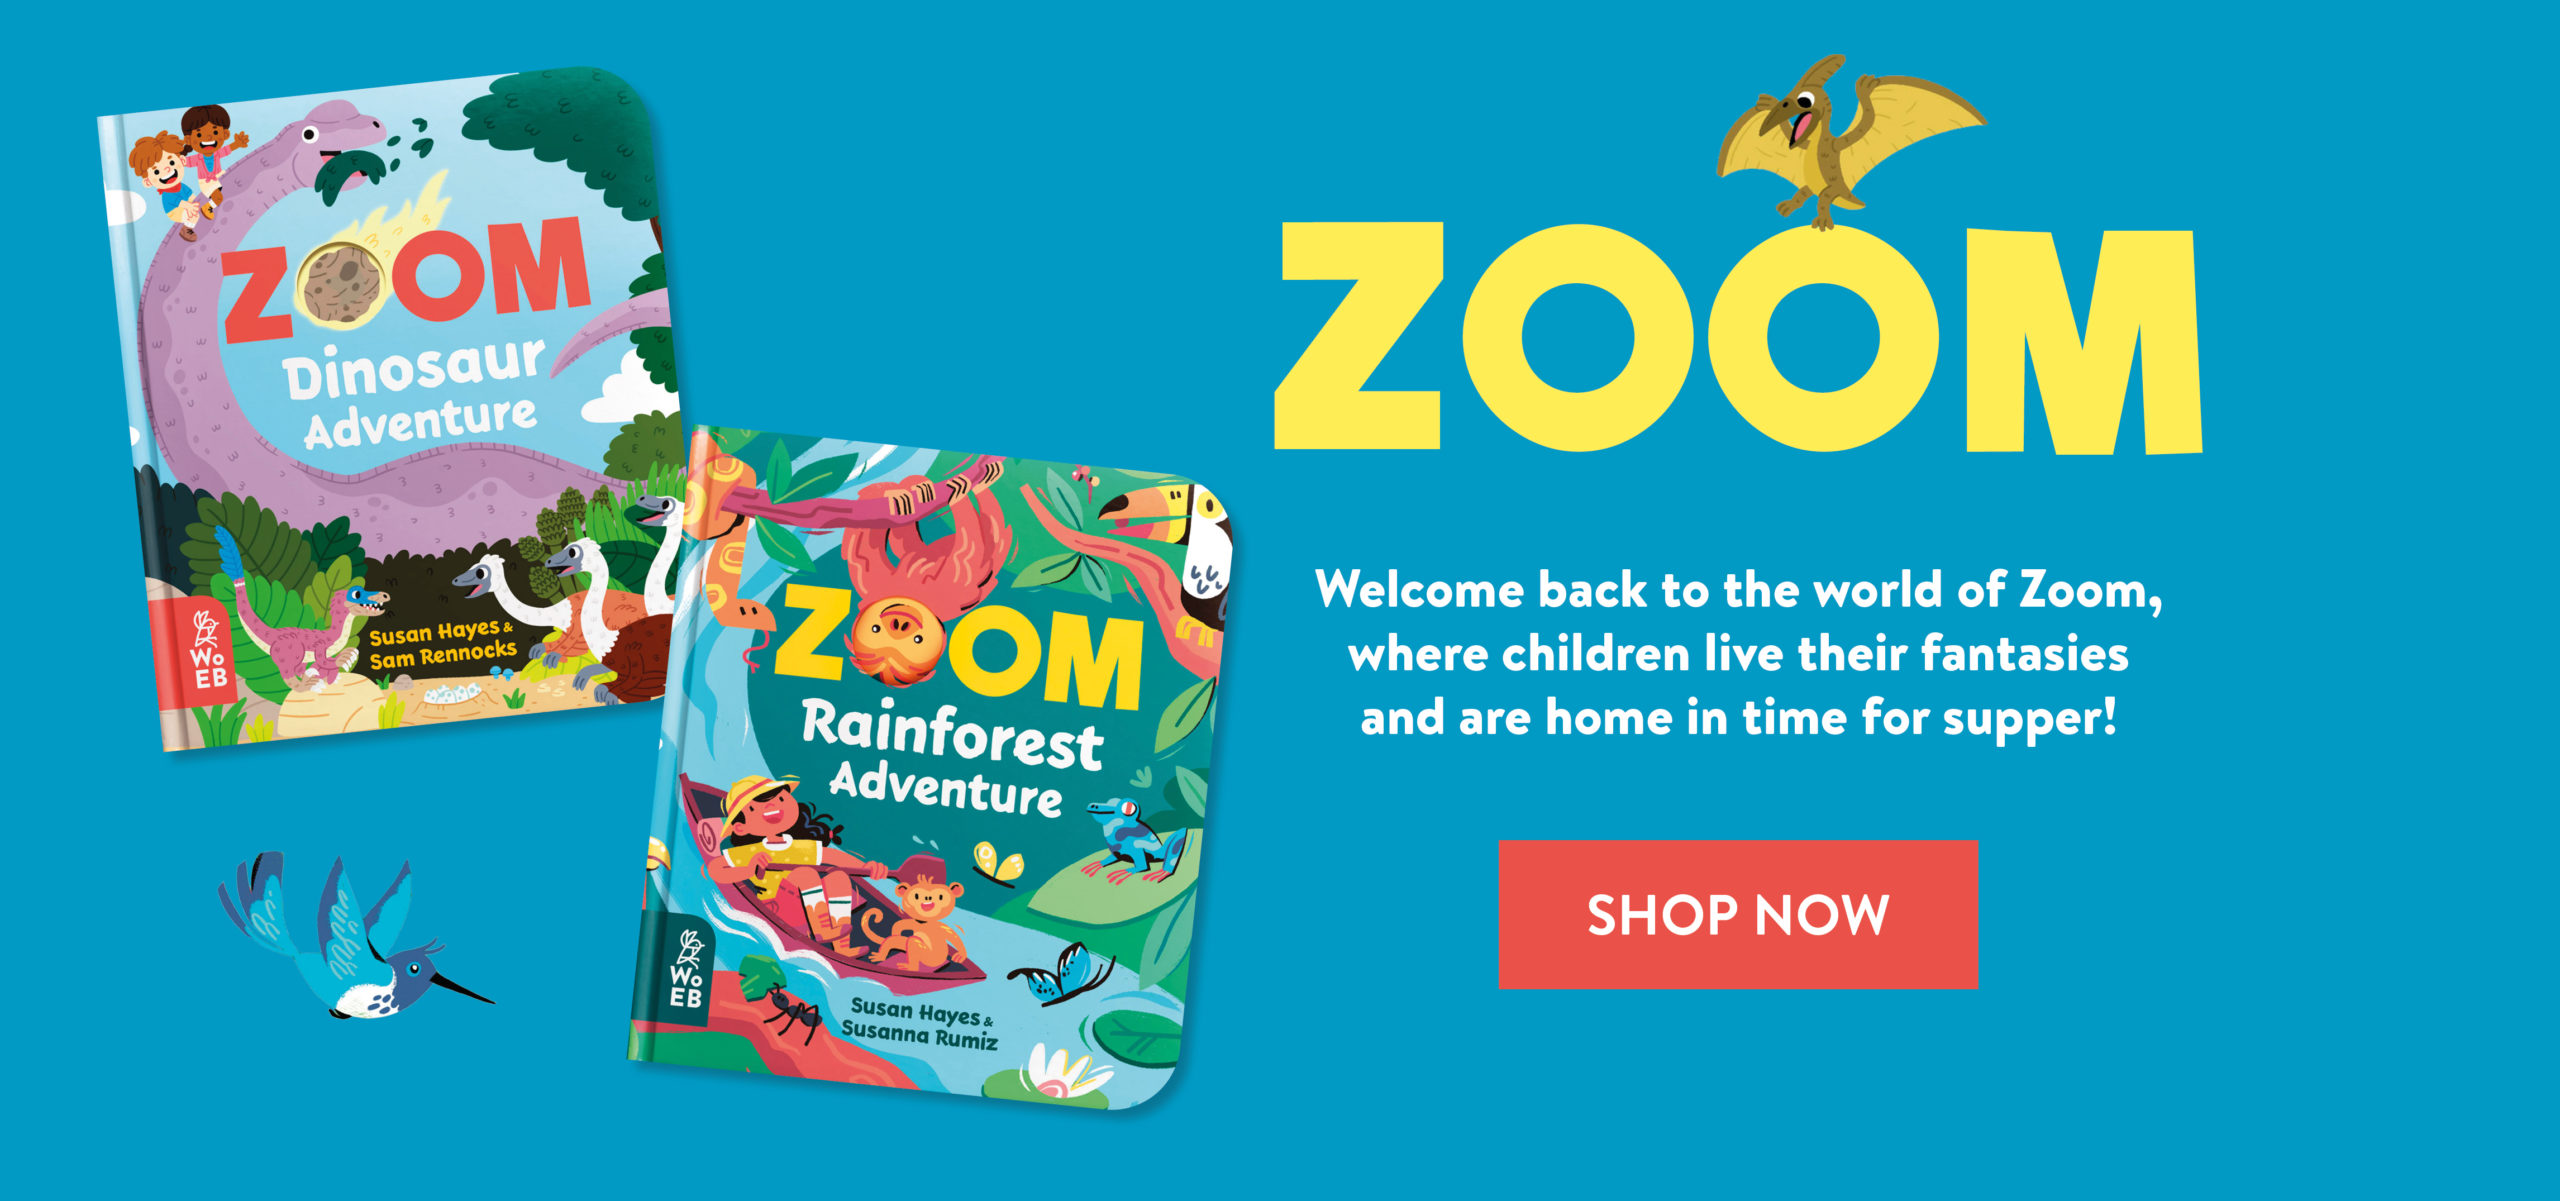 Zoom Dinosaur and Rainforest